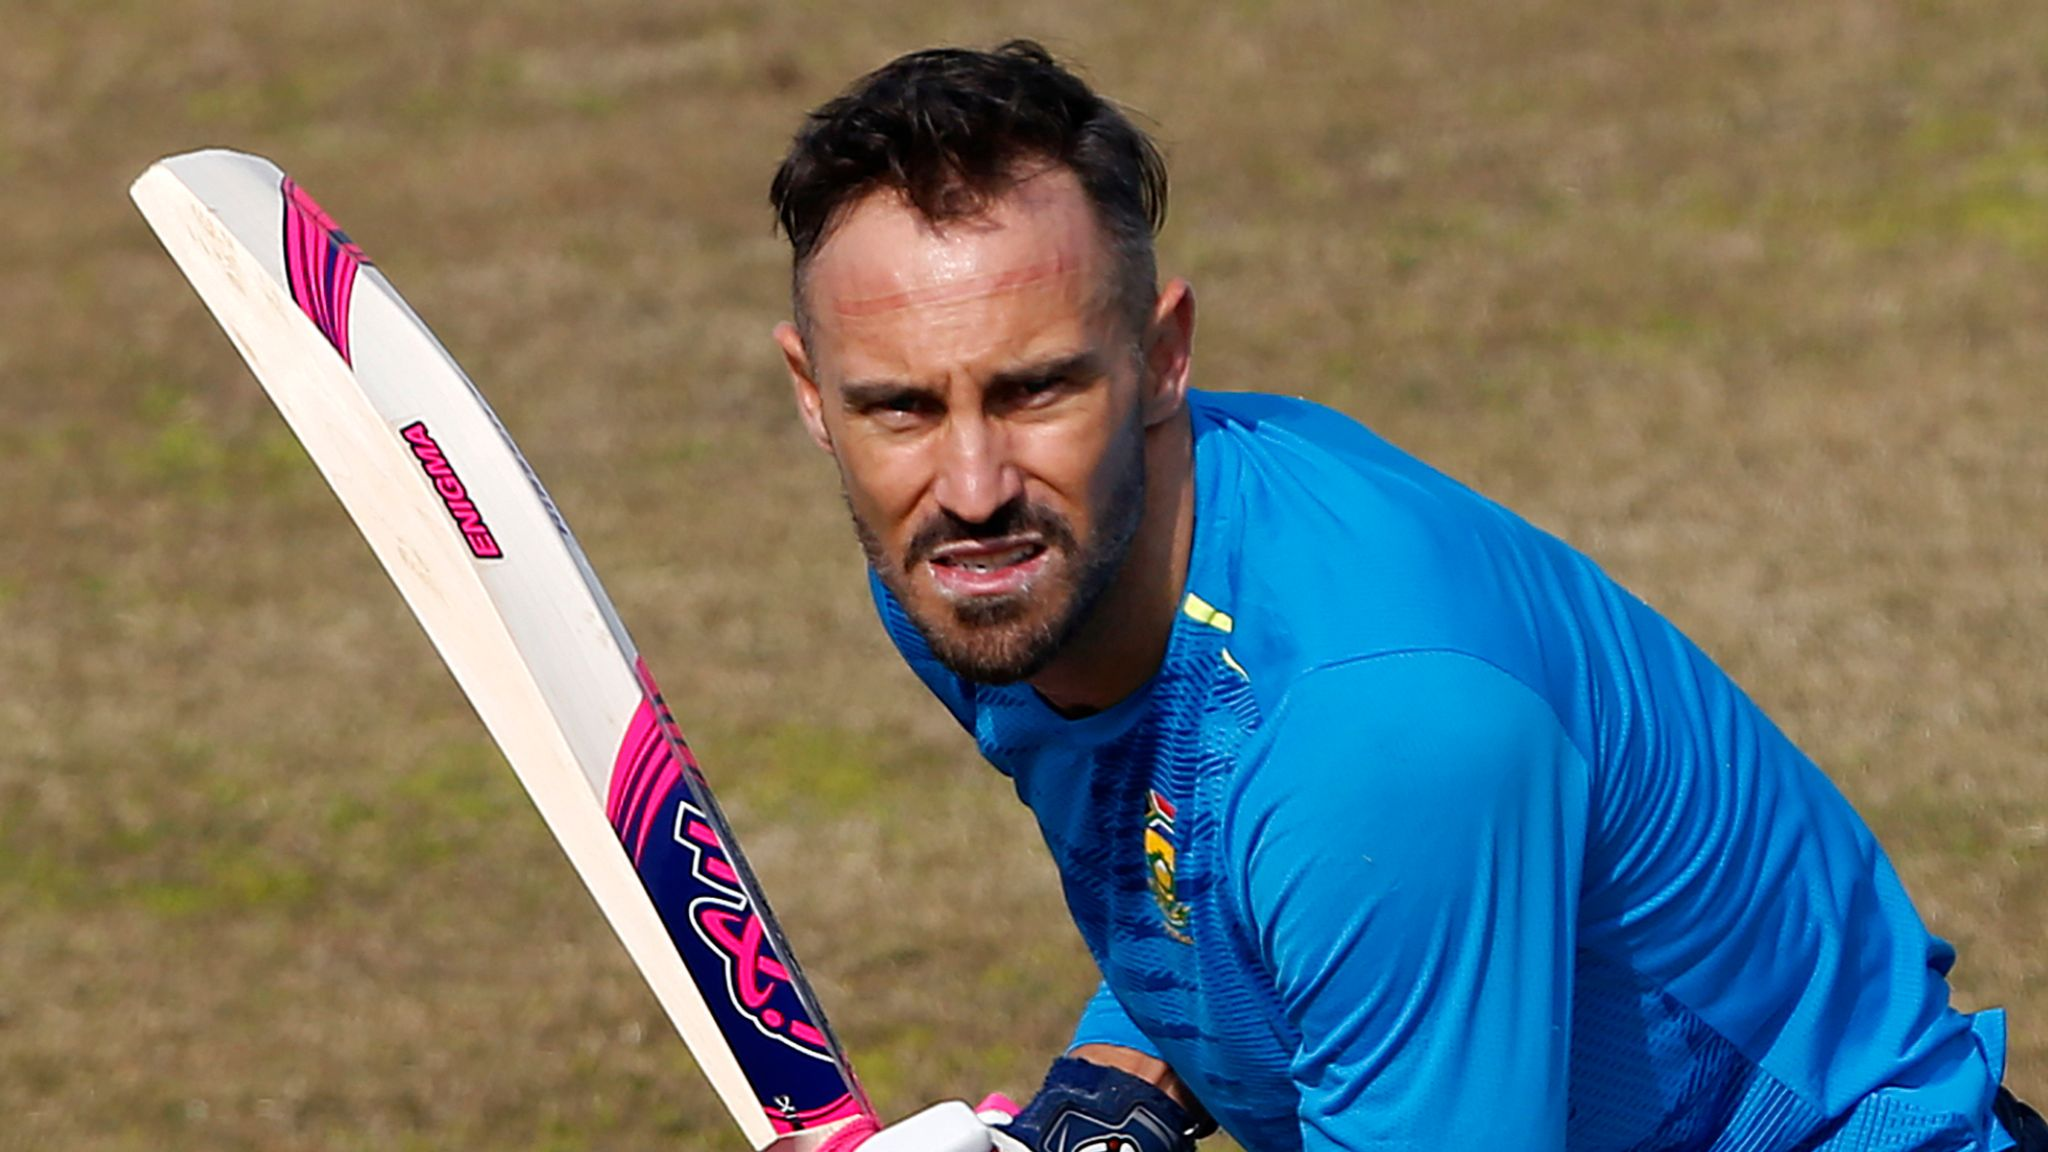 Faf du Plessis: Former South Africa captain retires from Test cricket to  focus on T20 World Cups | Cricket News | Sky Sports